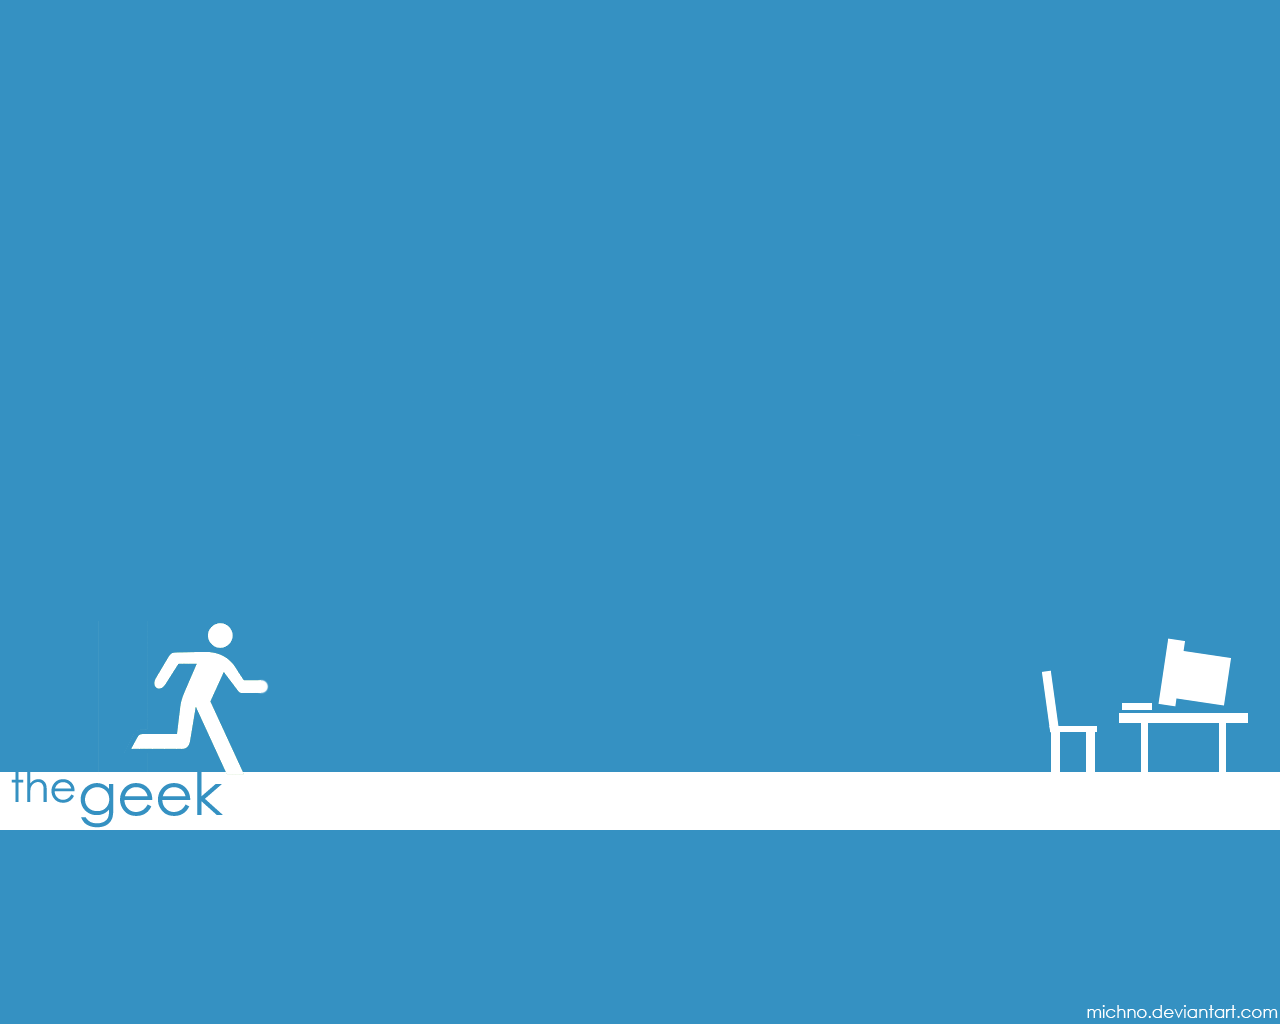 funny geek wallpapers hd - photo #6